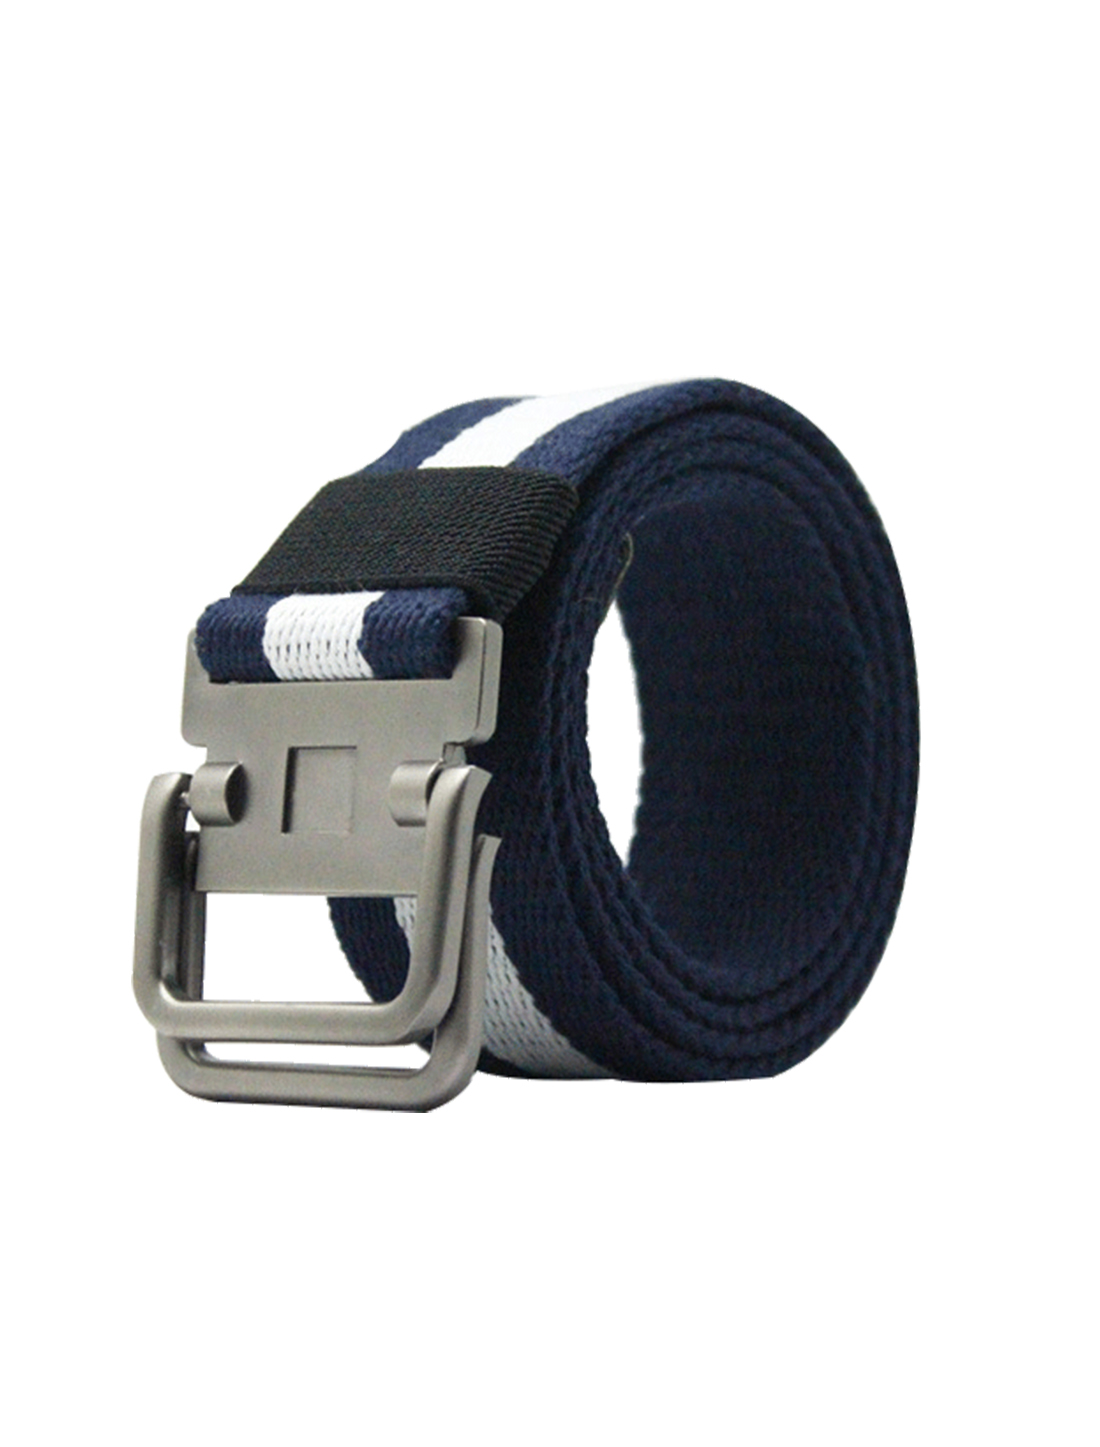 Unisex Canvas Double Ring Adjustable Holeless Metal Buckle Belt Navy Blue White